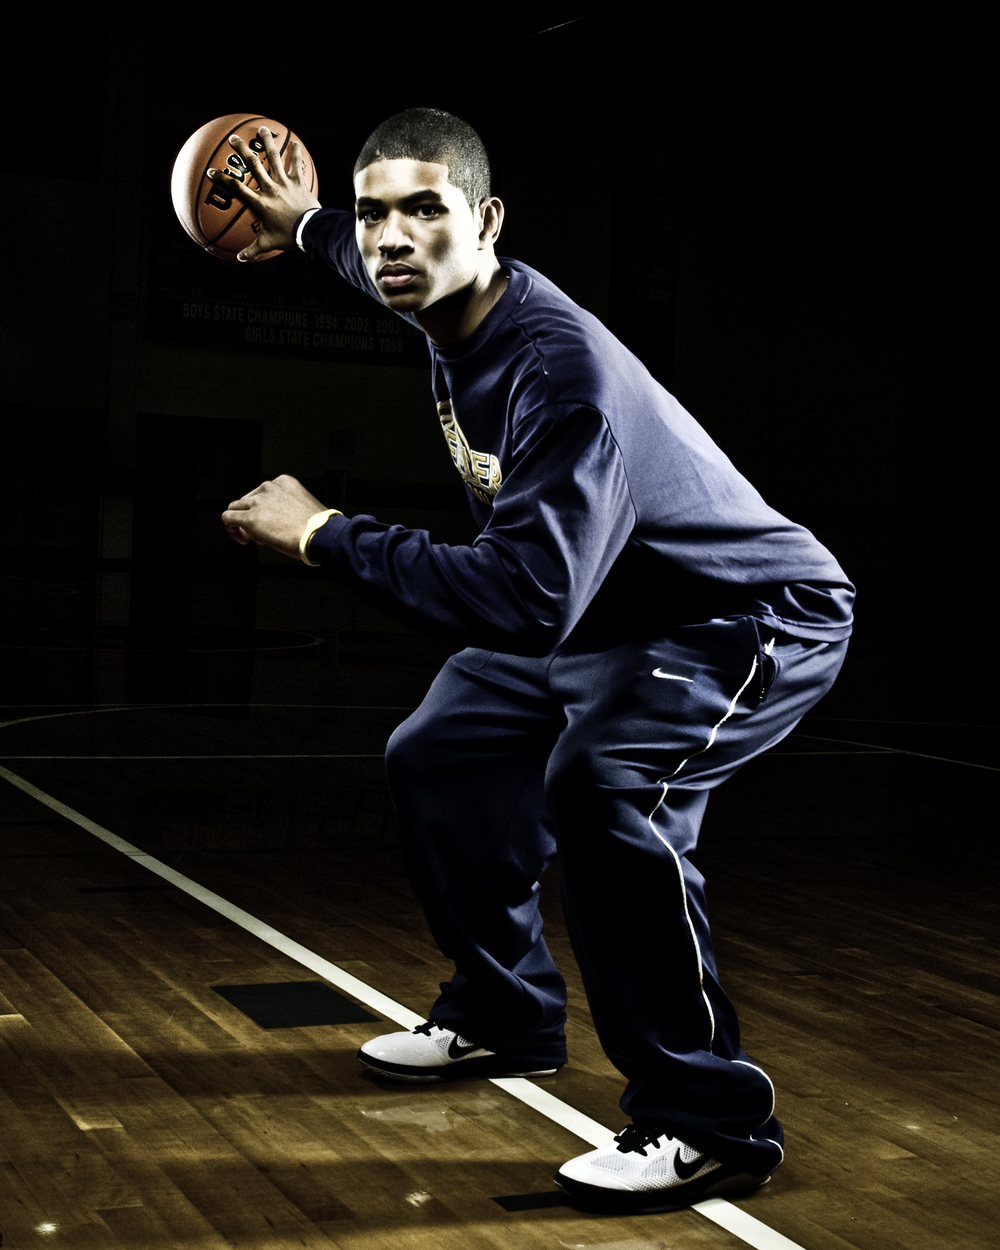 cb_playerspotlight_0111_kksimmons_basketball7.jpg